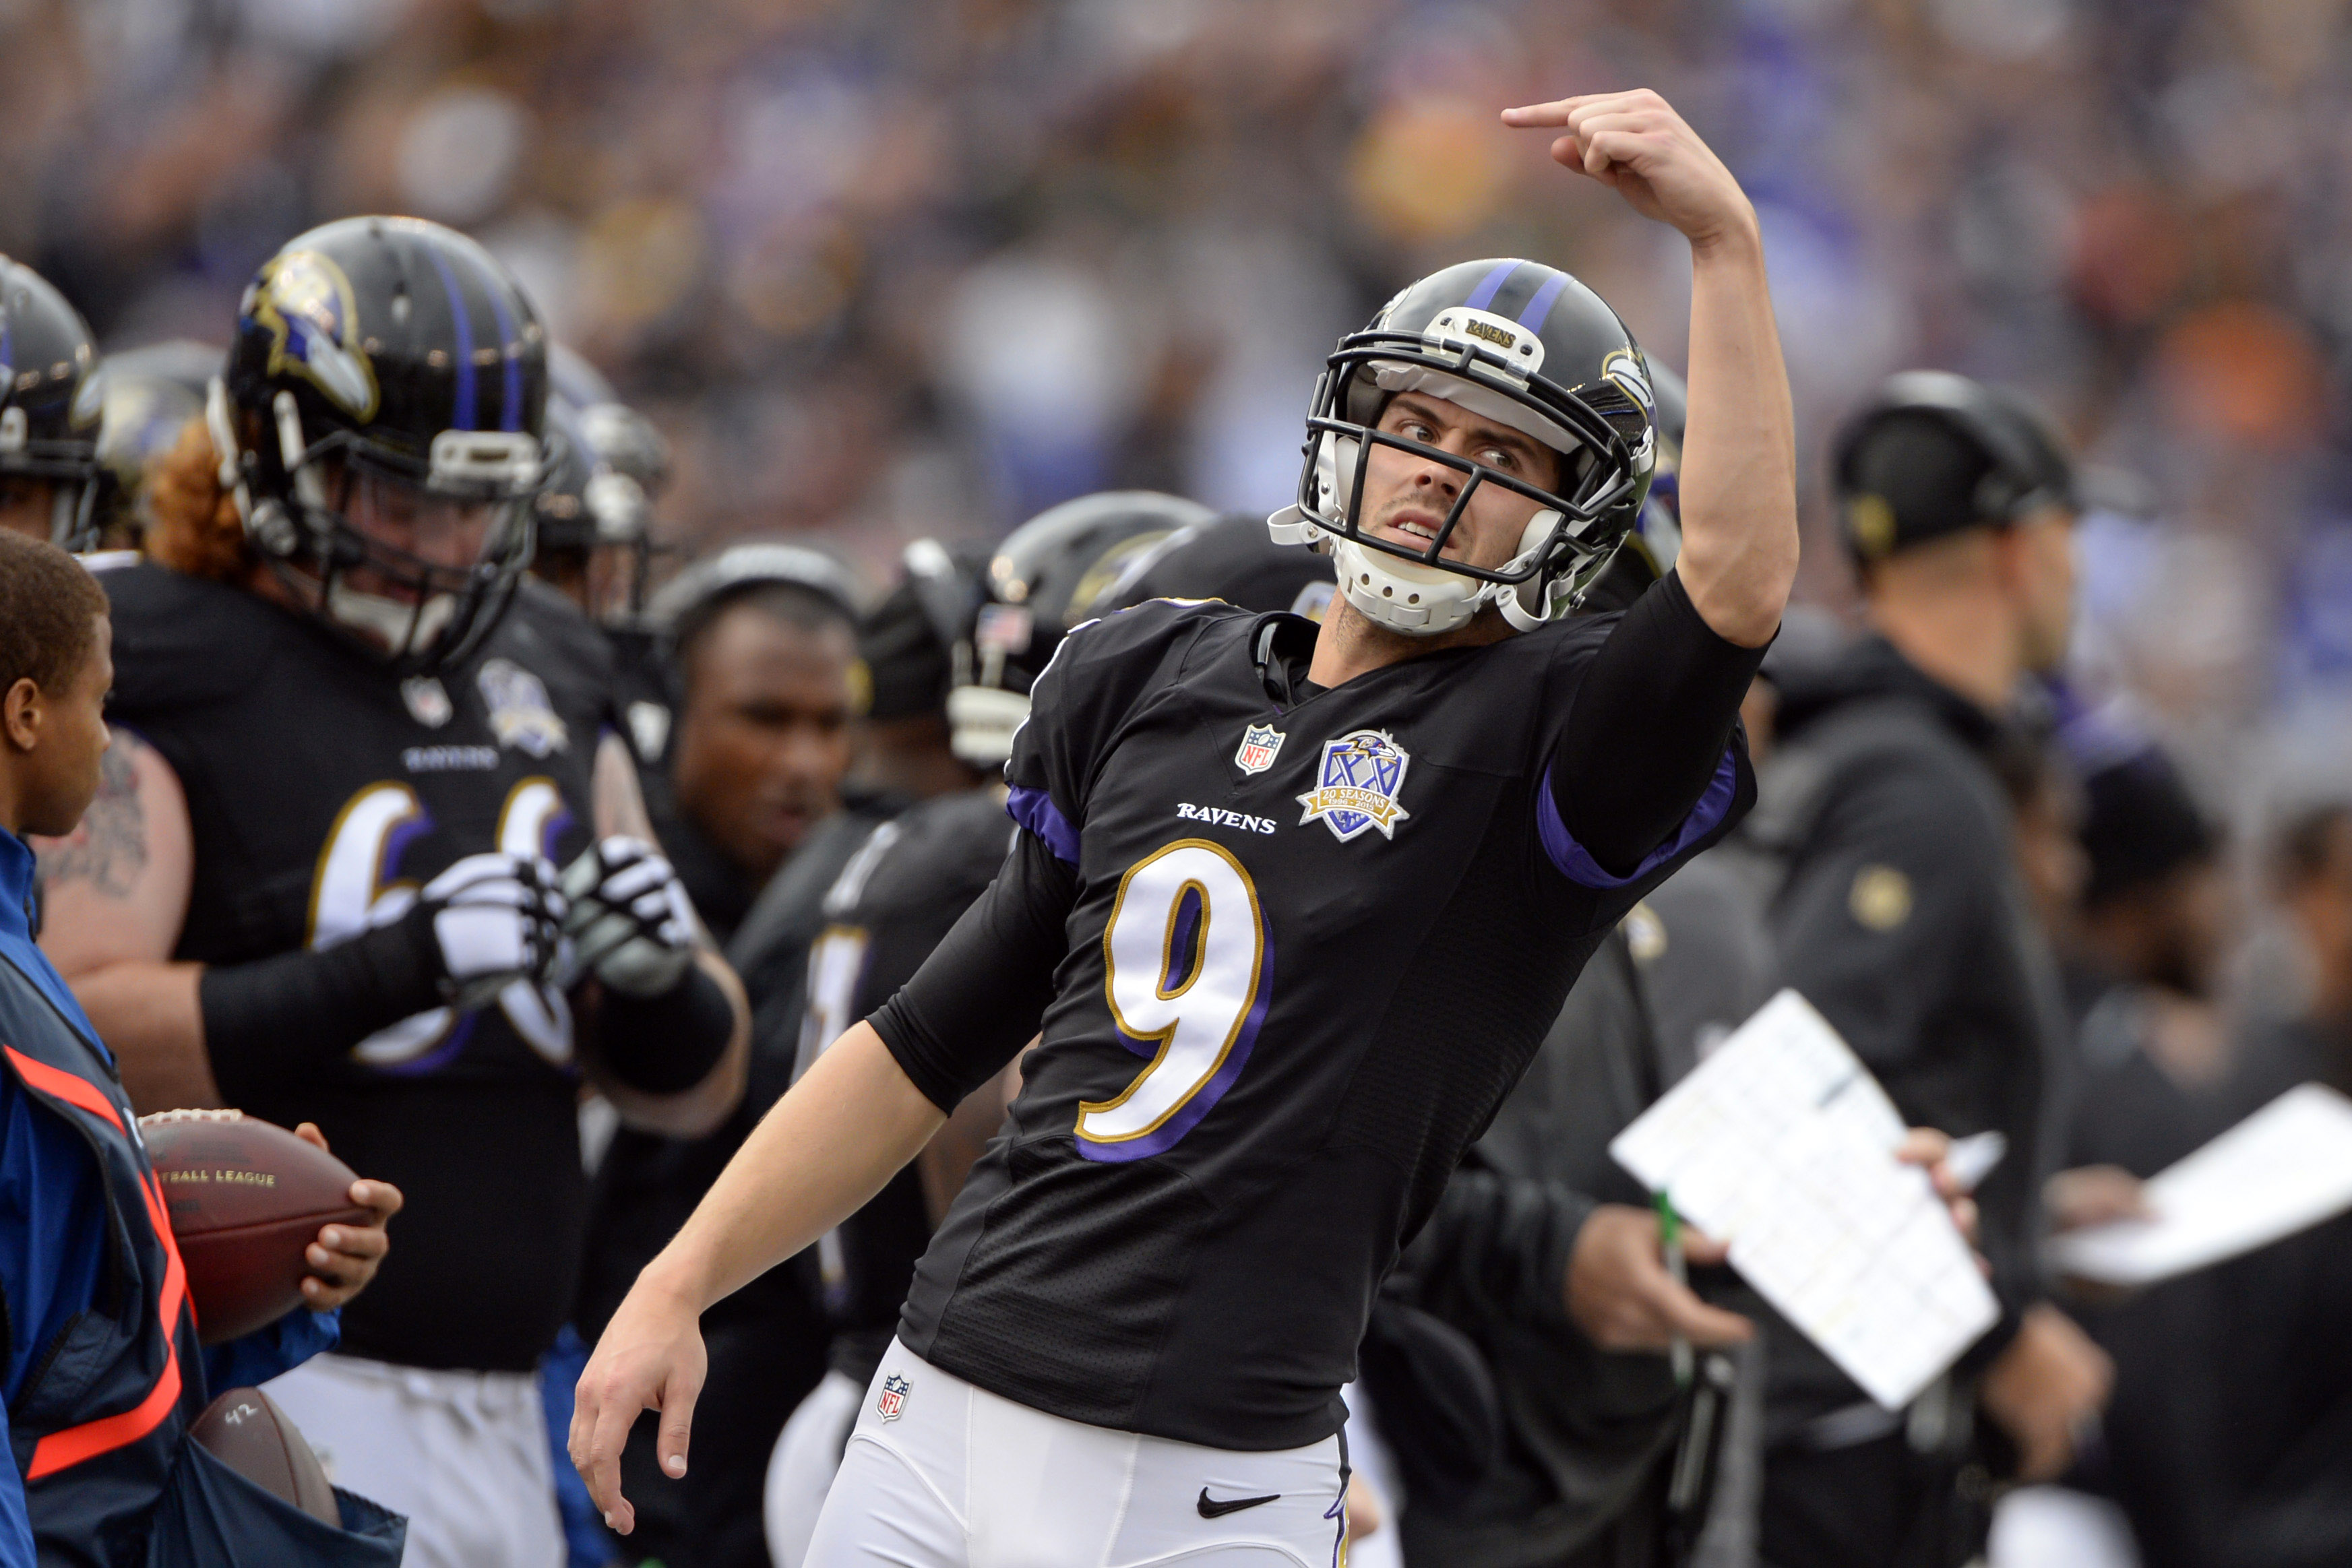 Dec 27, 2015; Baltimore, MD, USA; Baltimore Ravens kicker Justin Tucker (9) signals to wide receiver Kaelin Clay (81) (not pictured) during the second quarter against the Pittsburgh Steelers at M&T Bank Stadium. Mandatory Credit: Tommy Gilligan-USA TODAY Sports